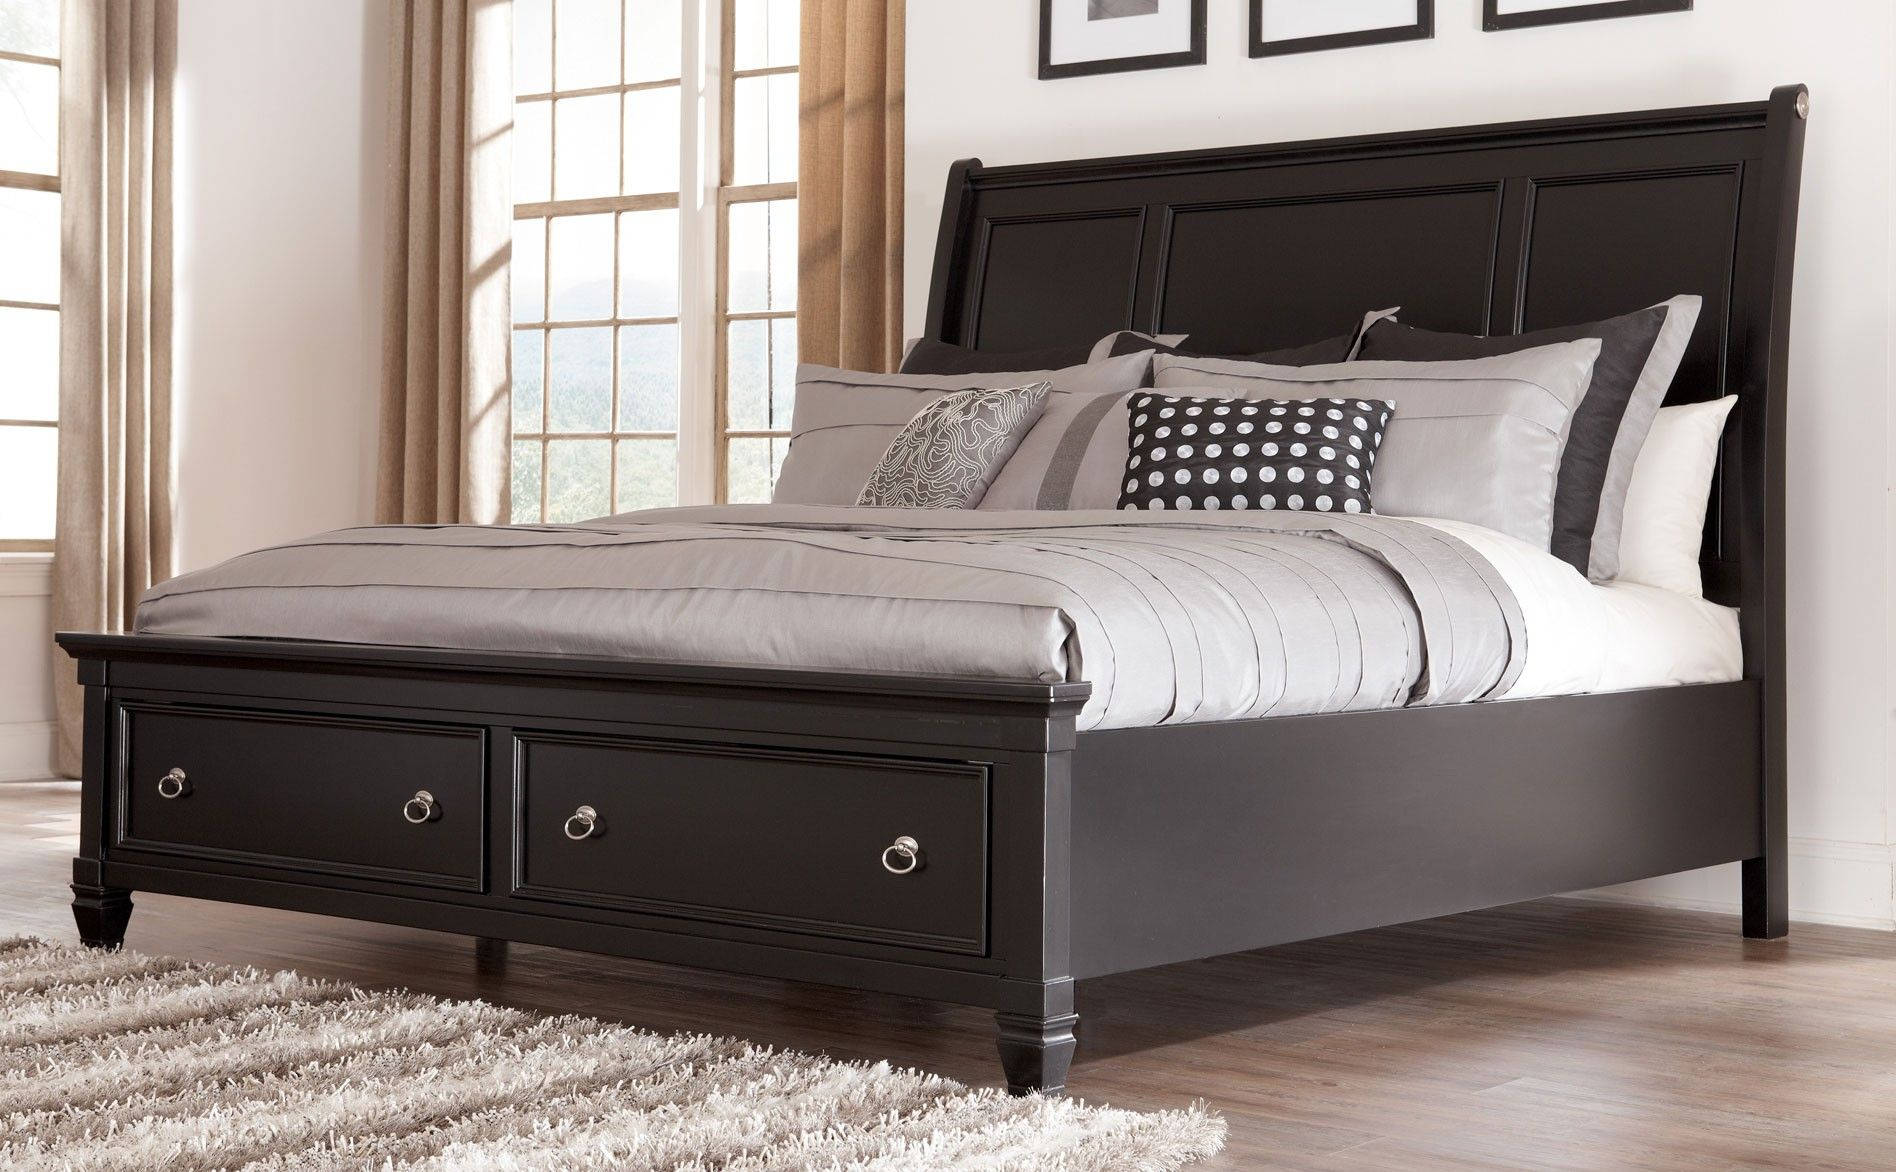 Marlo Furniture Bedroom Sets Ashley Greensburg King Sleigh Bed With Storage For The Home